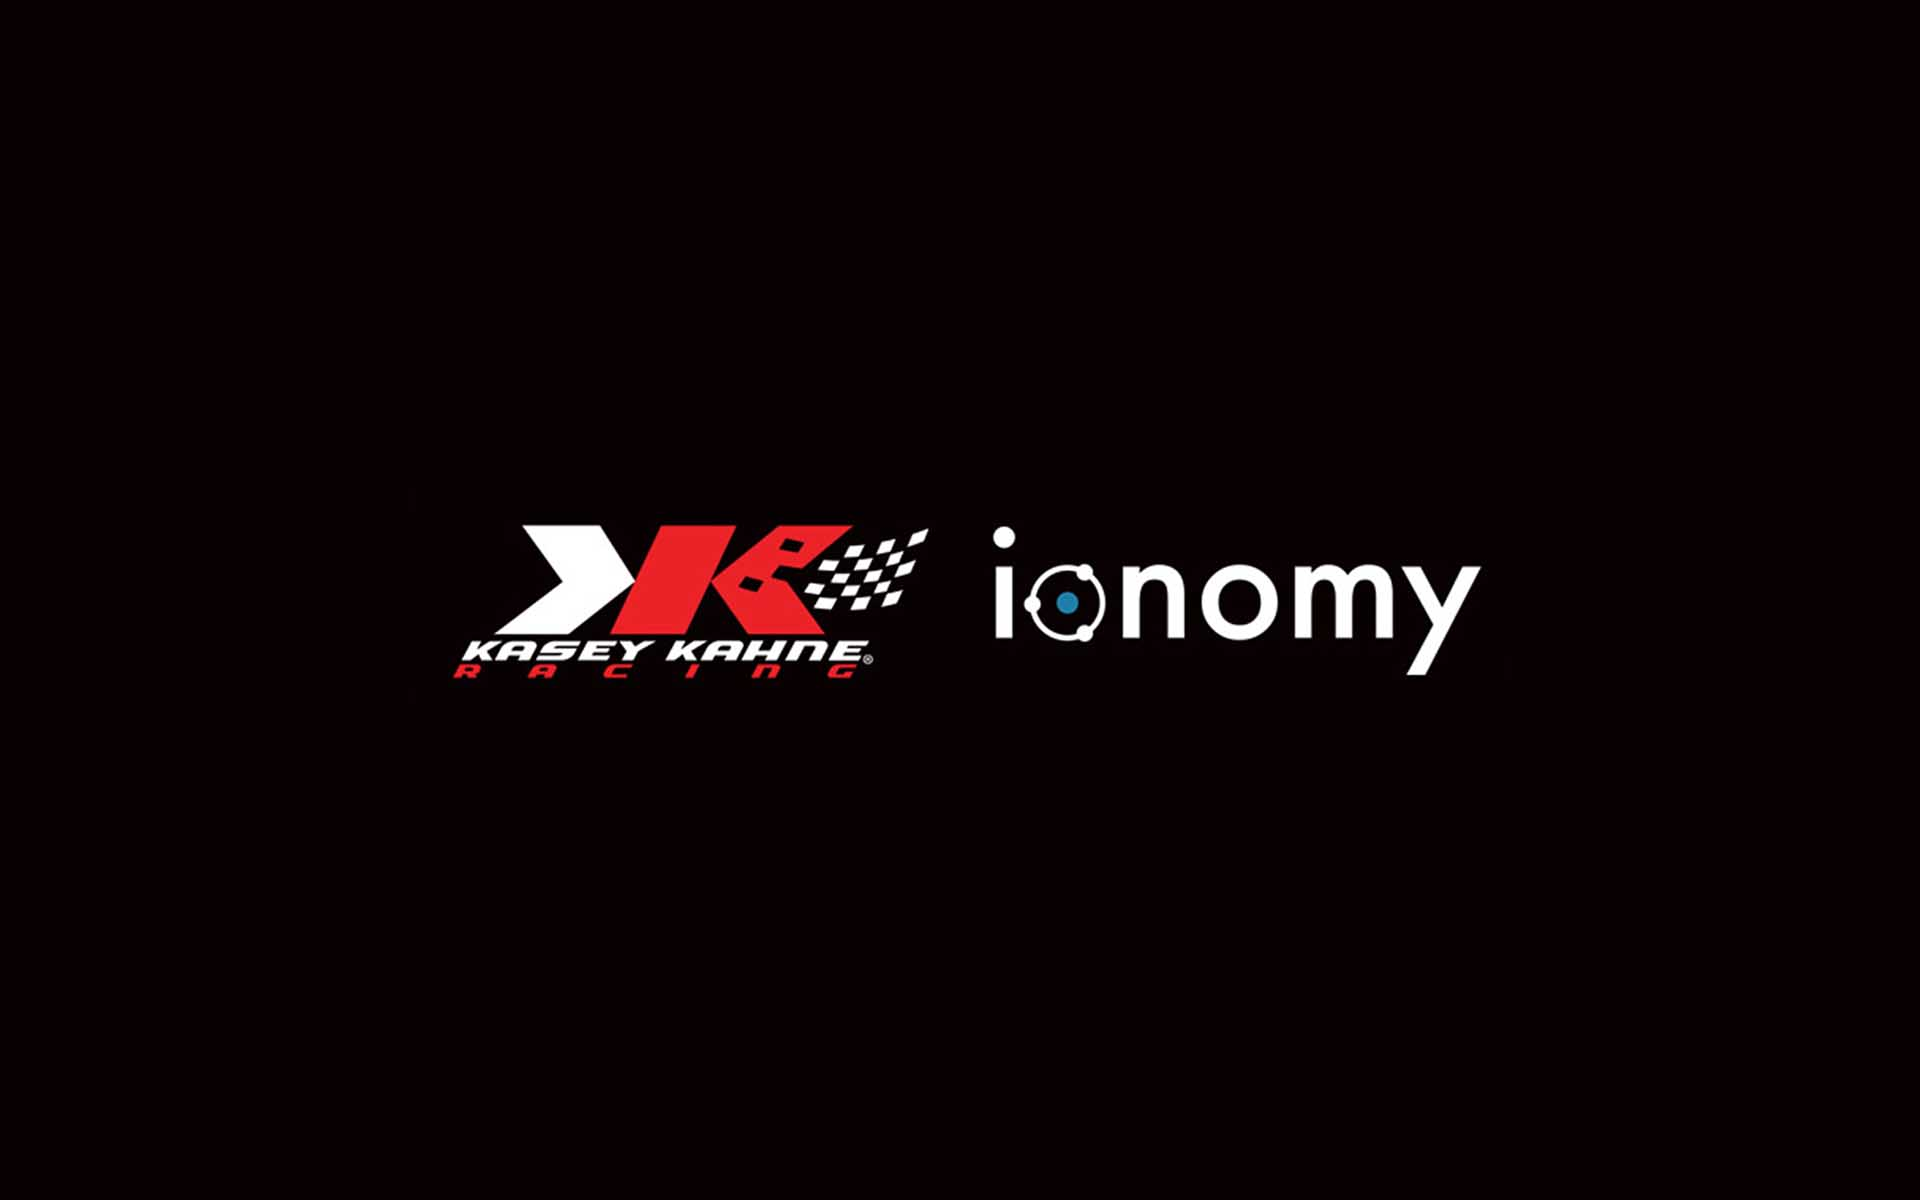 ionomy Studios Partners with Kasey Kahne Racing and Announces 'Offroad Heat' Racing Game